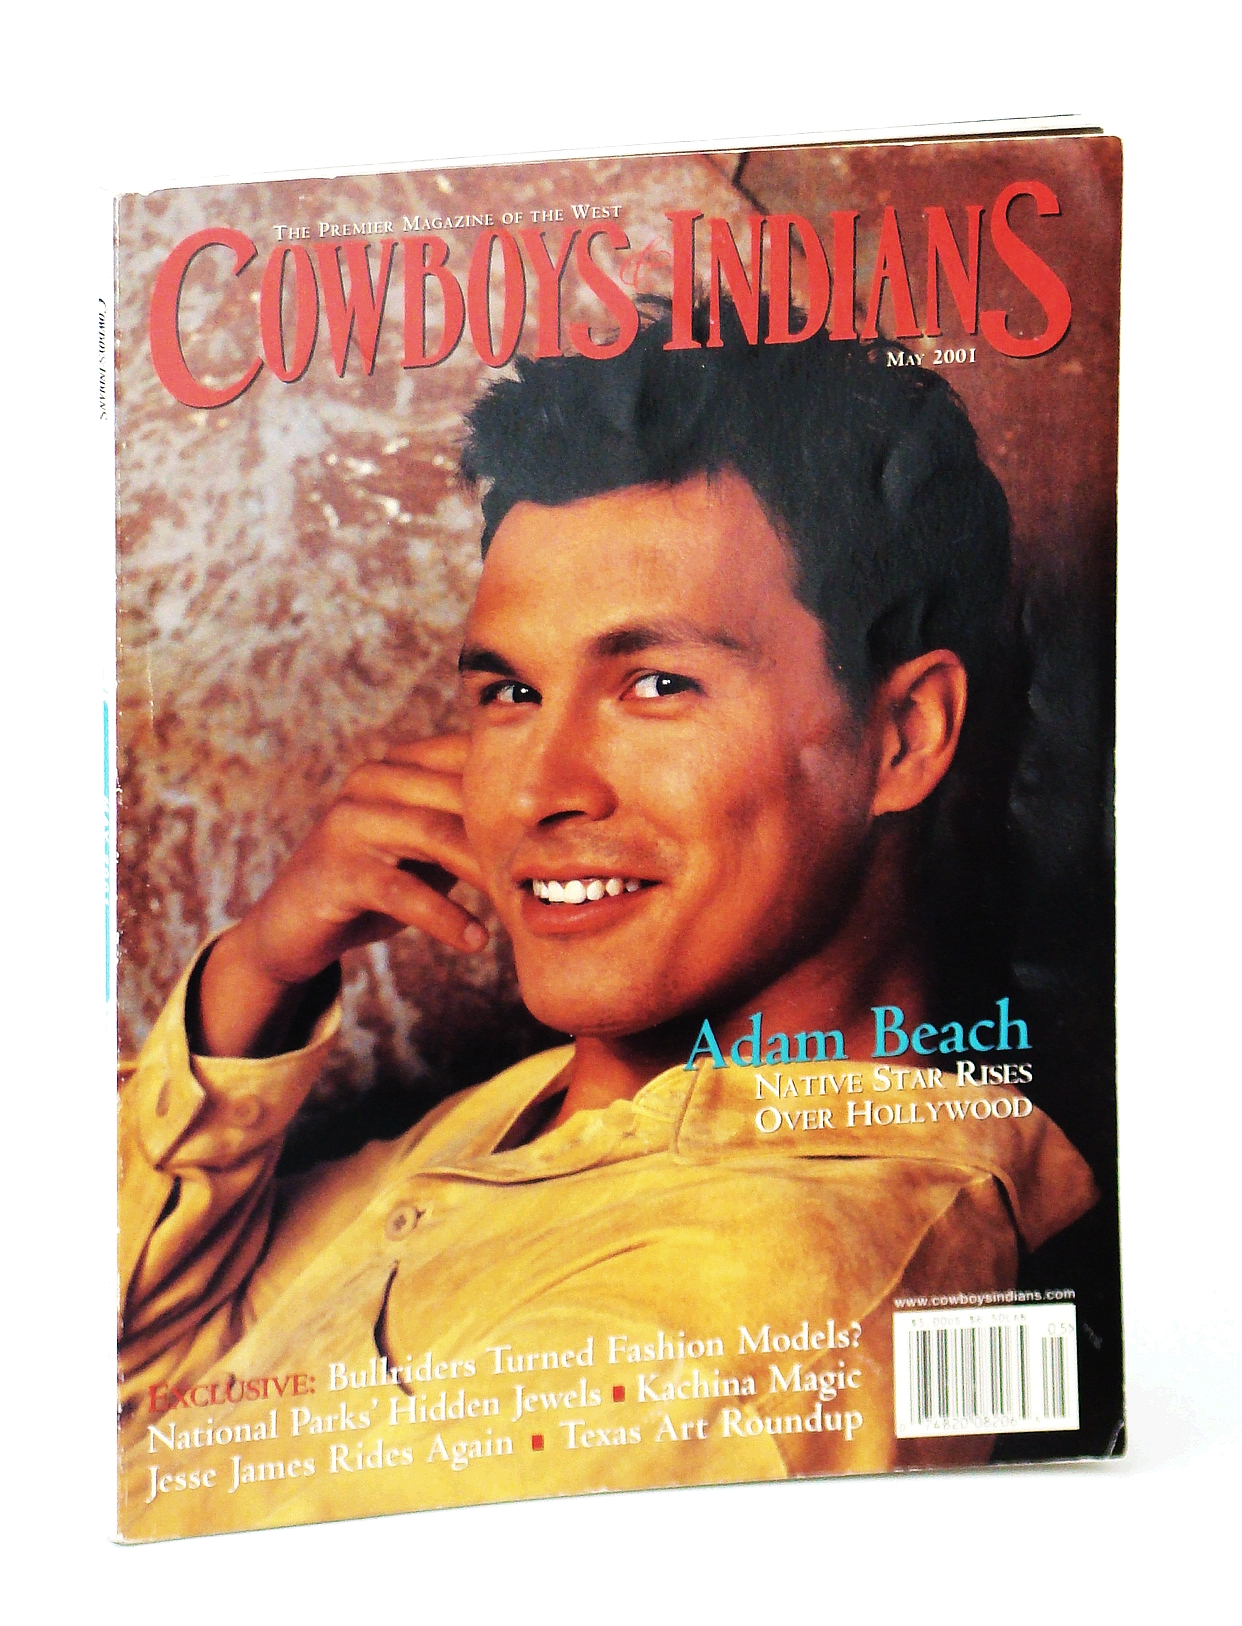 Image for Cowboys and Indians - The Premier Magazine of the West, May 2001 - Adam Beach Cover Photo